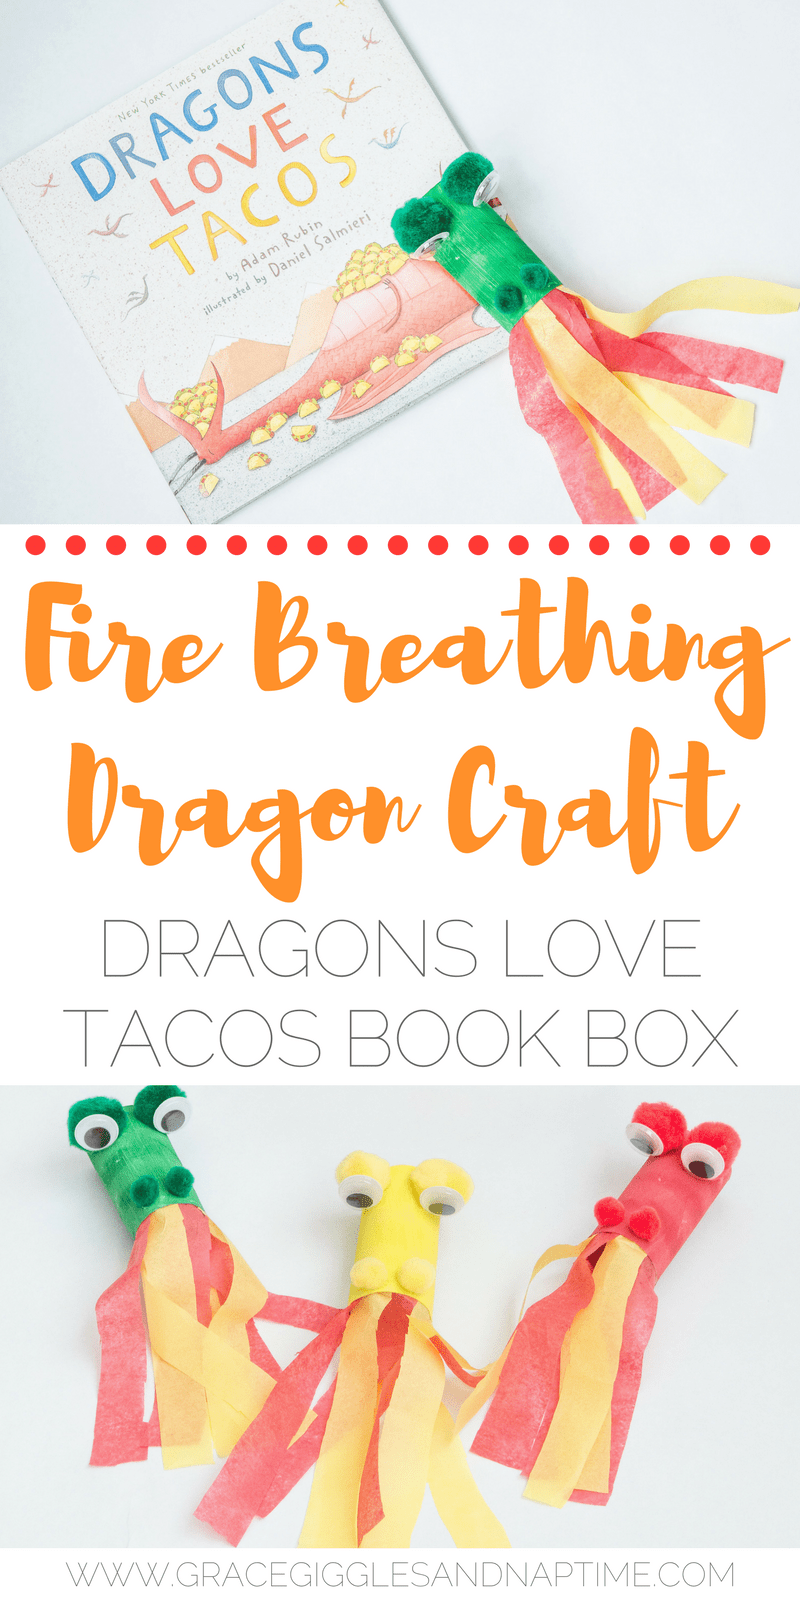 Dragons Love Tacos Book Box